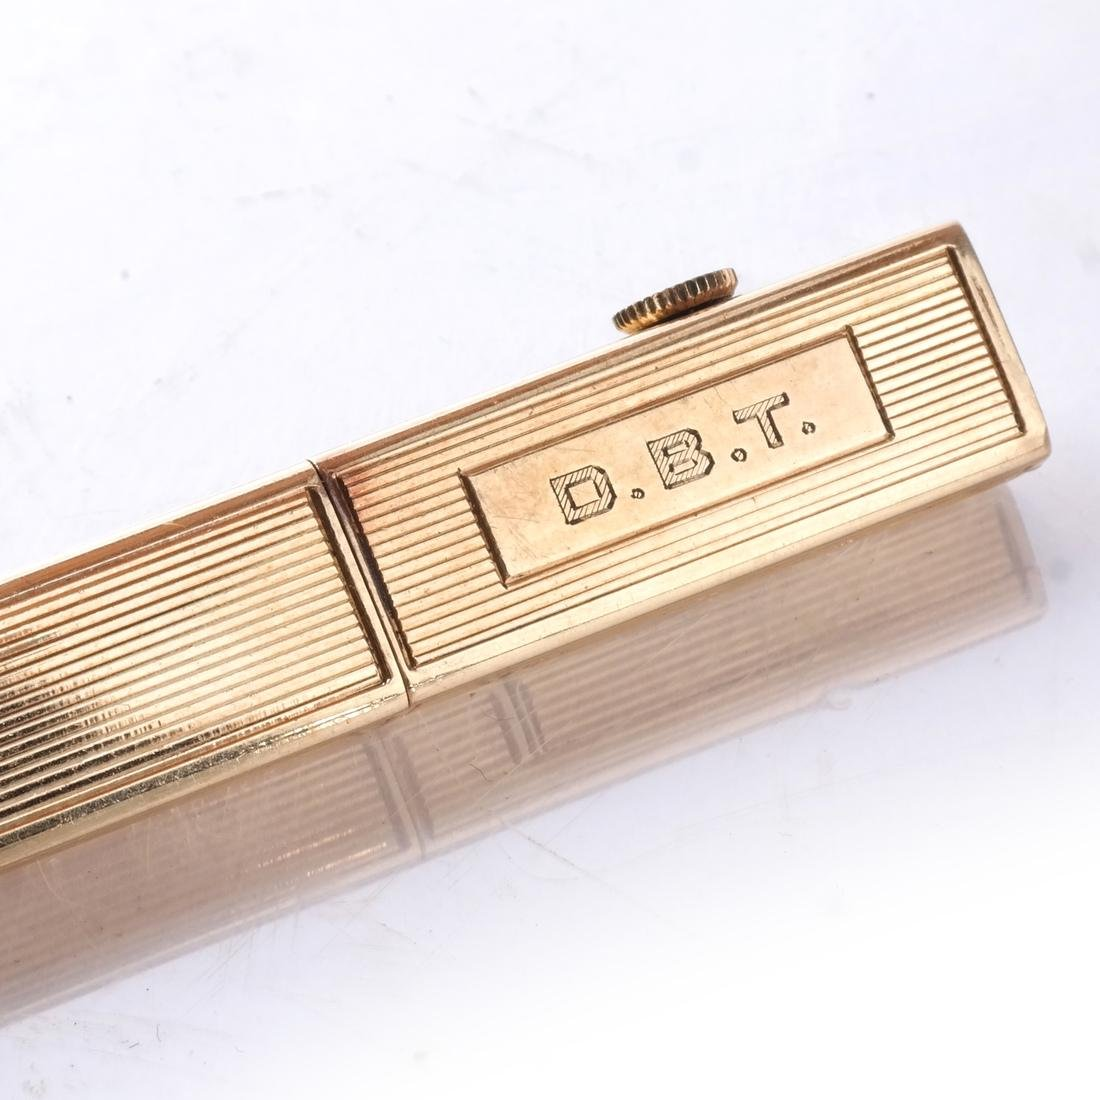 14k Watch Pencil - 2